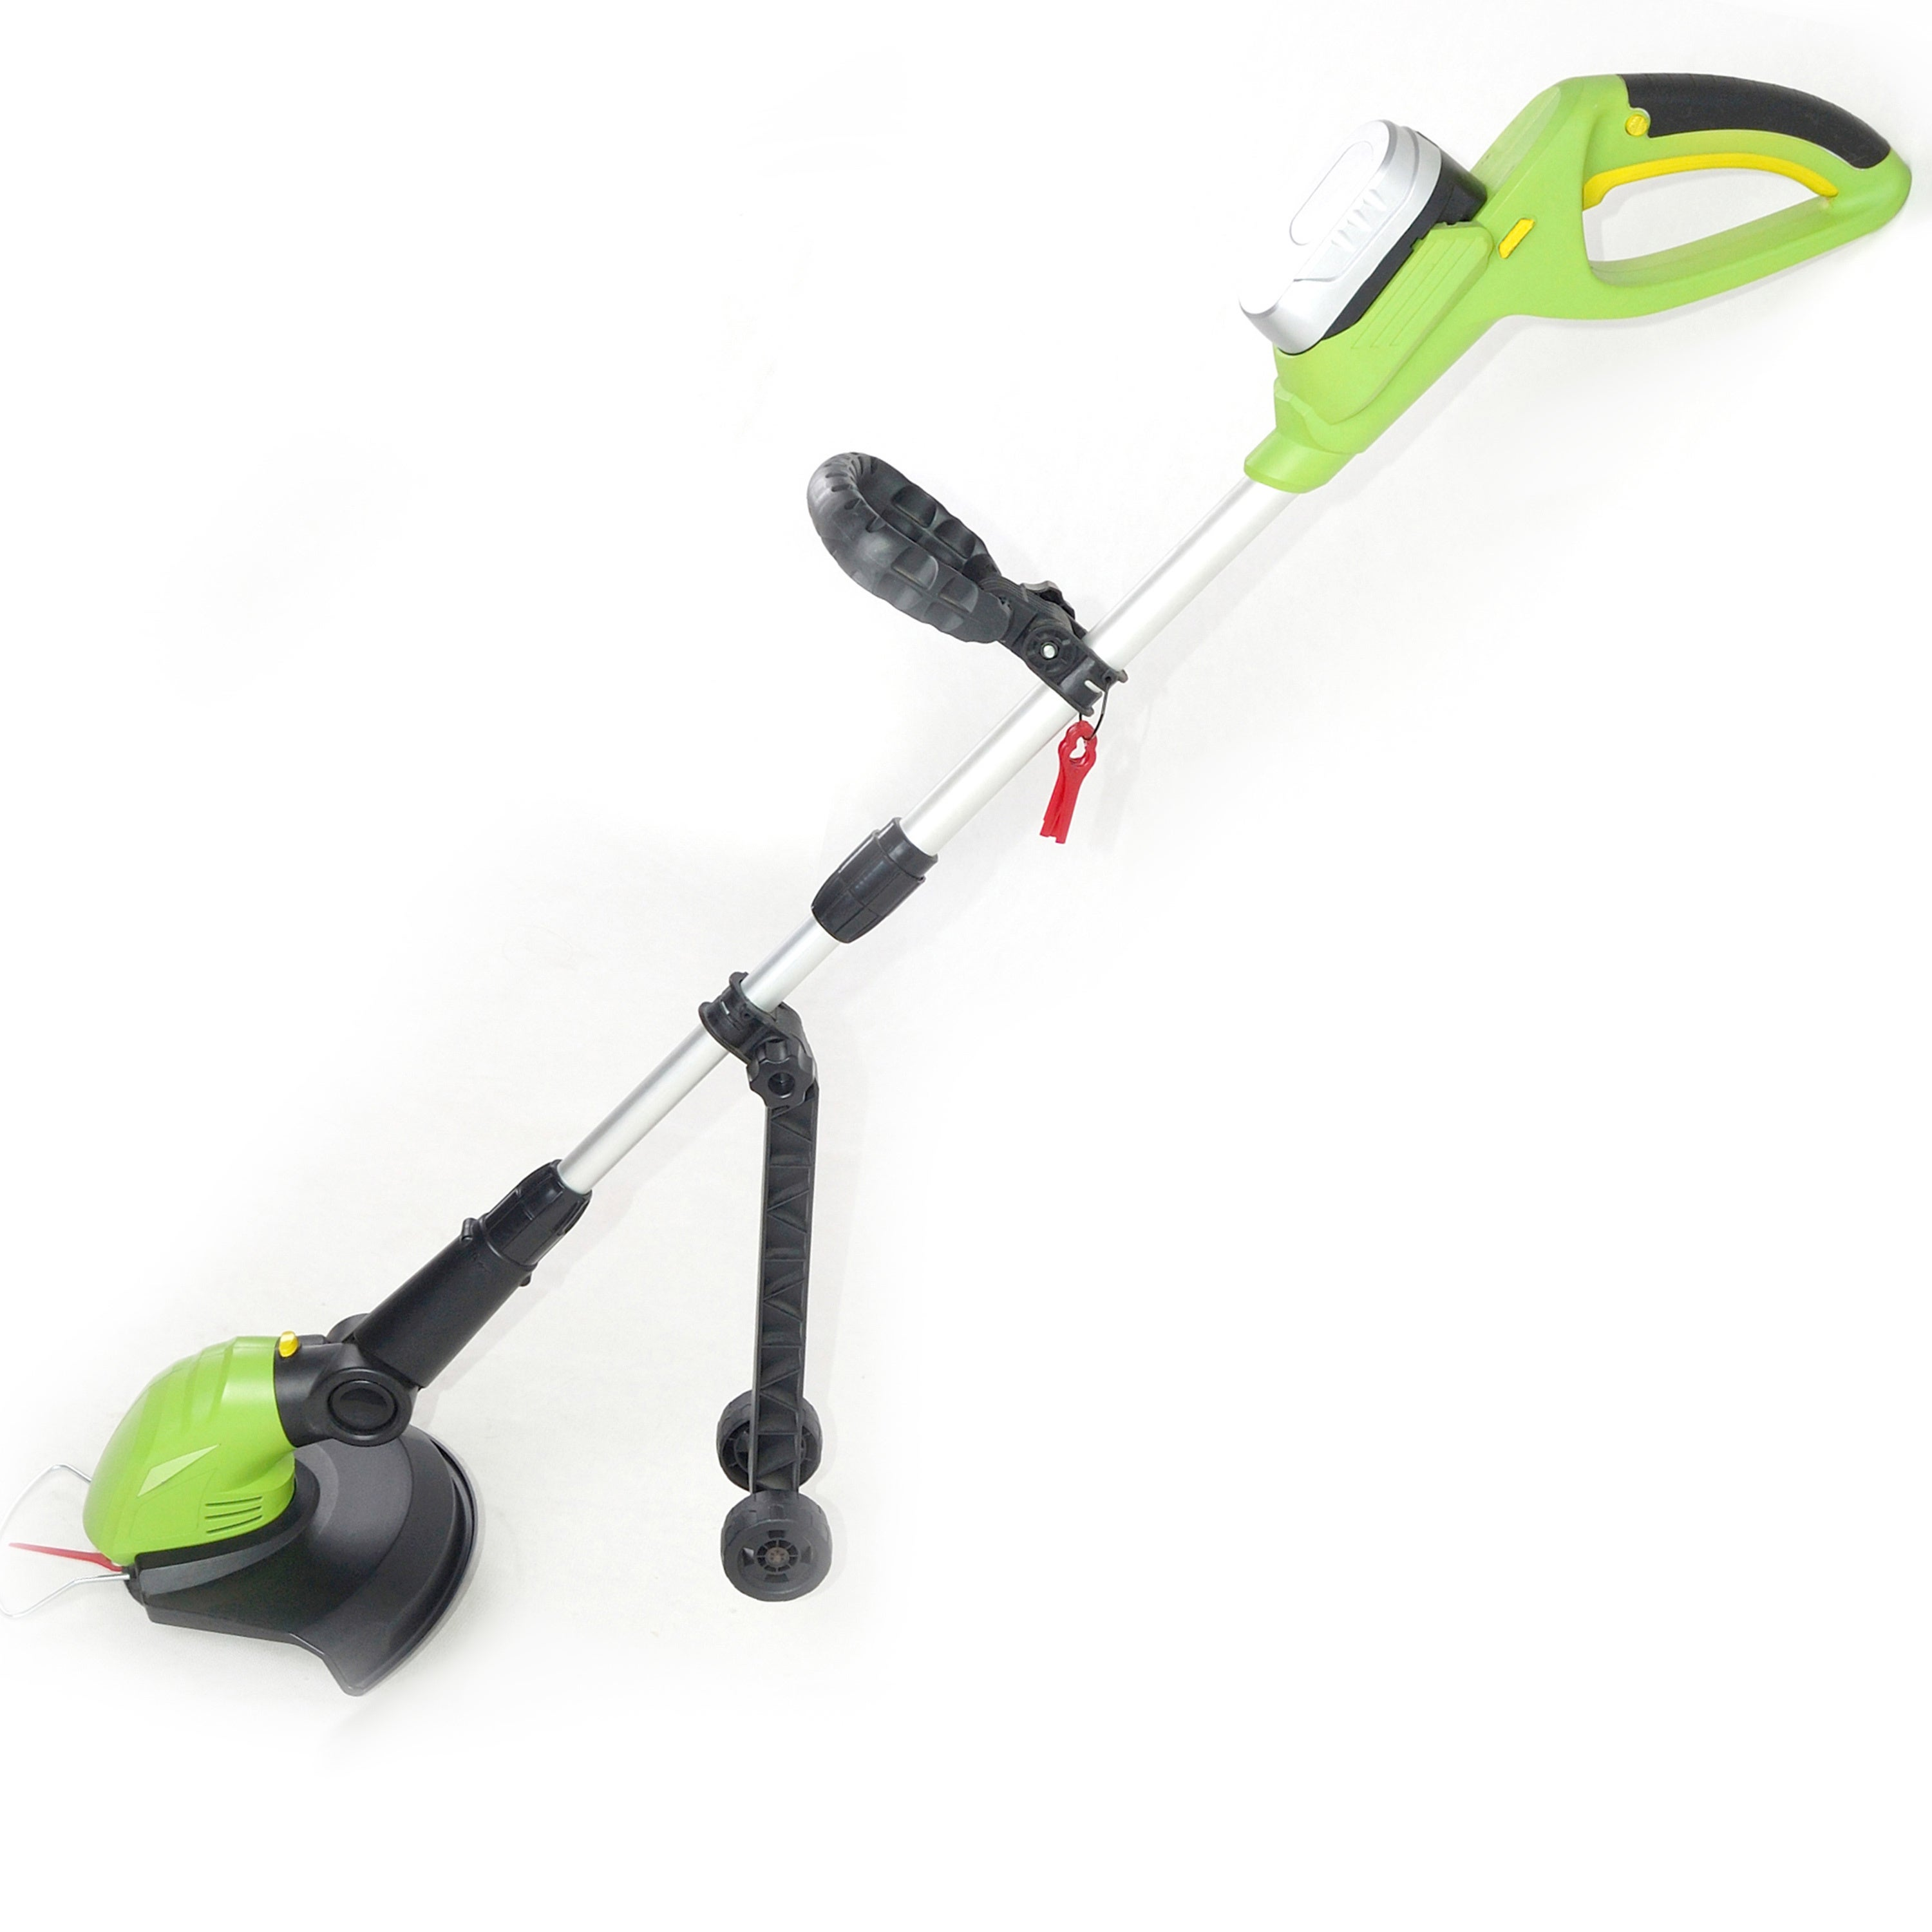 Pyle SereneLife PSLCGM25 Electric Cordless Grass Trimmer ...